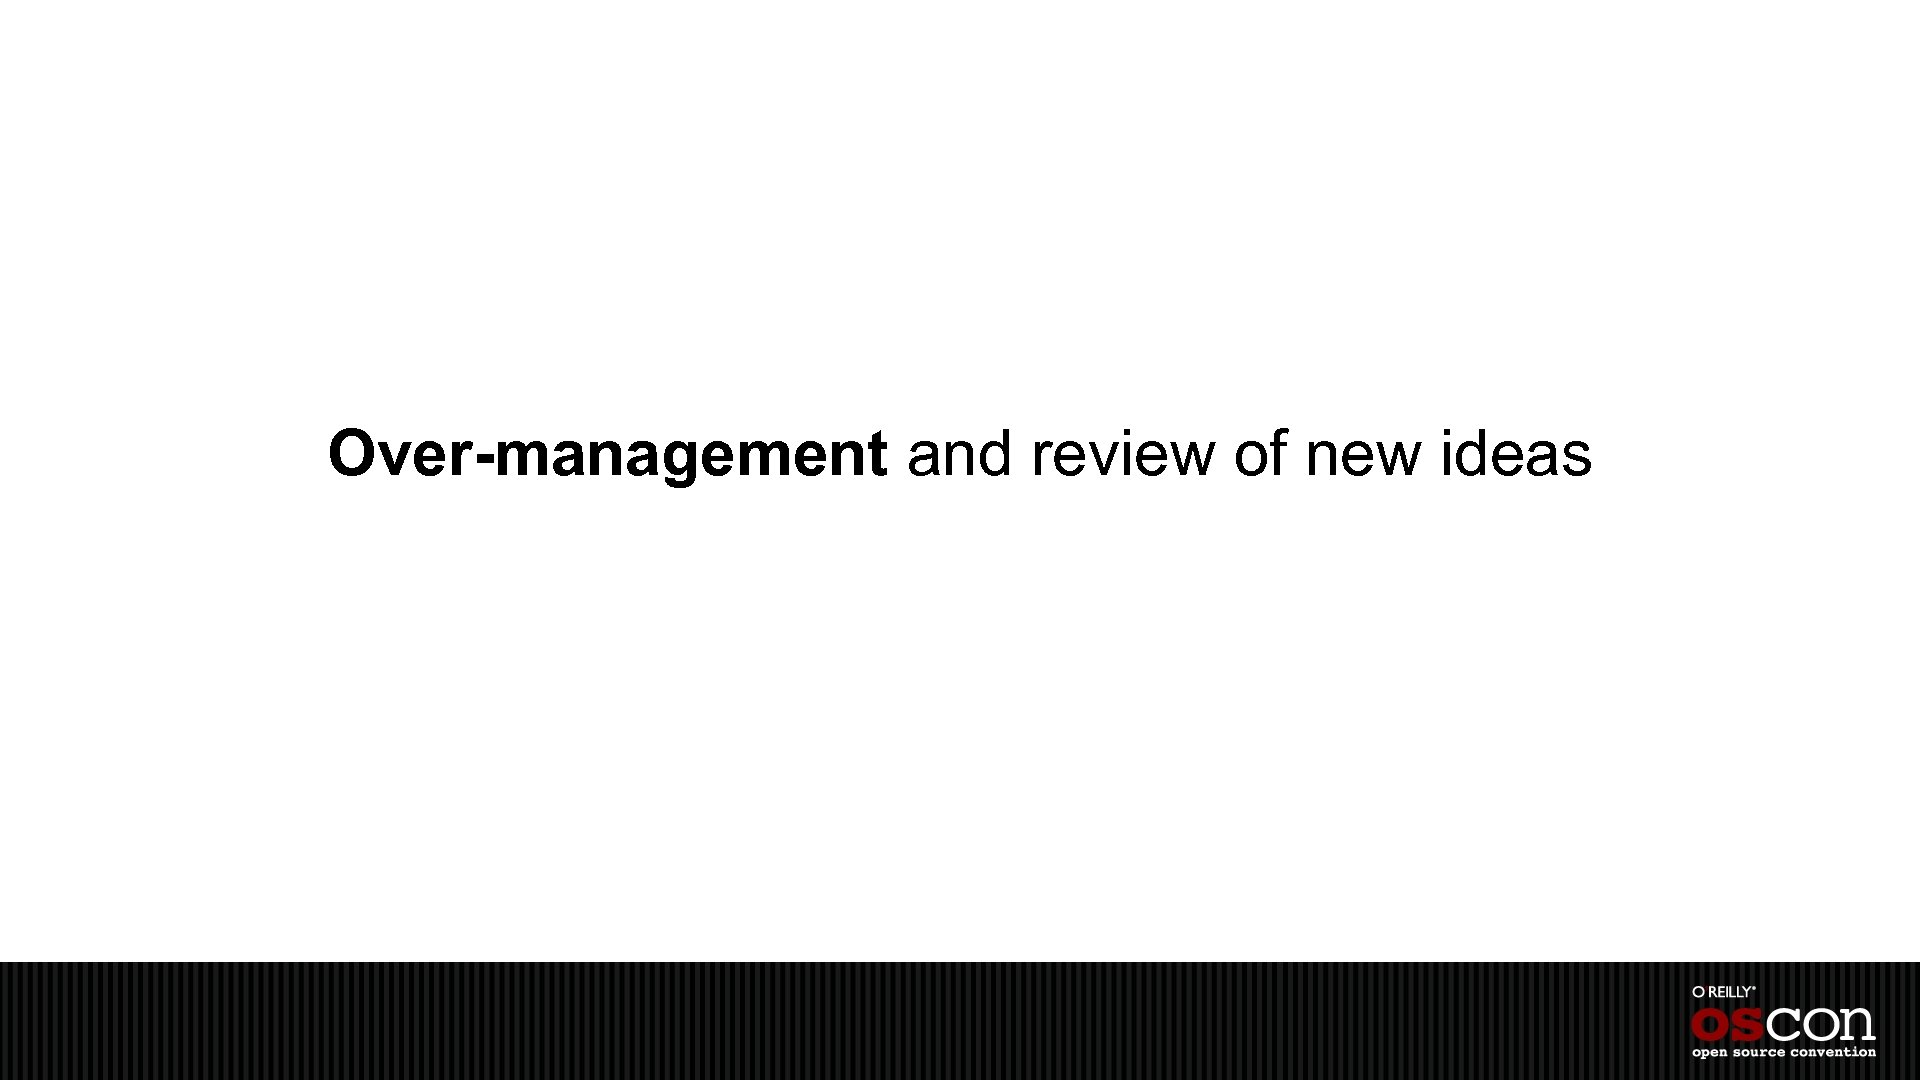 Over-management and review of new ideas